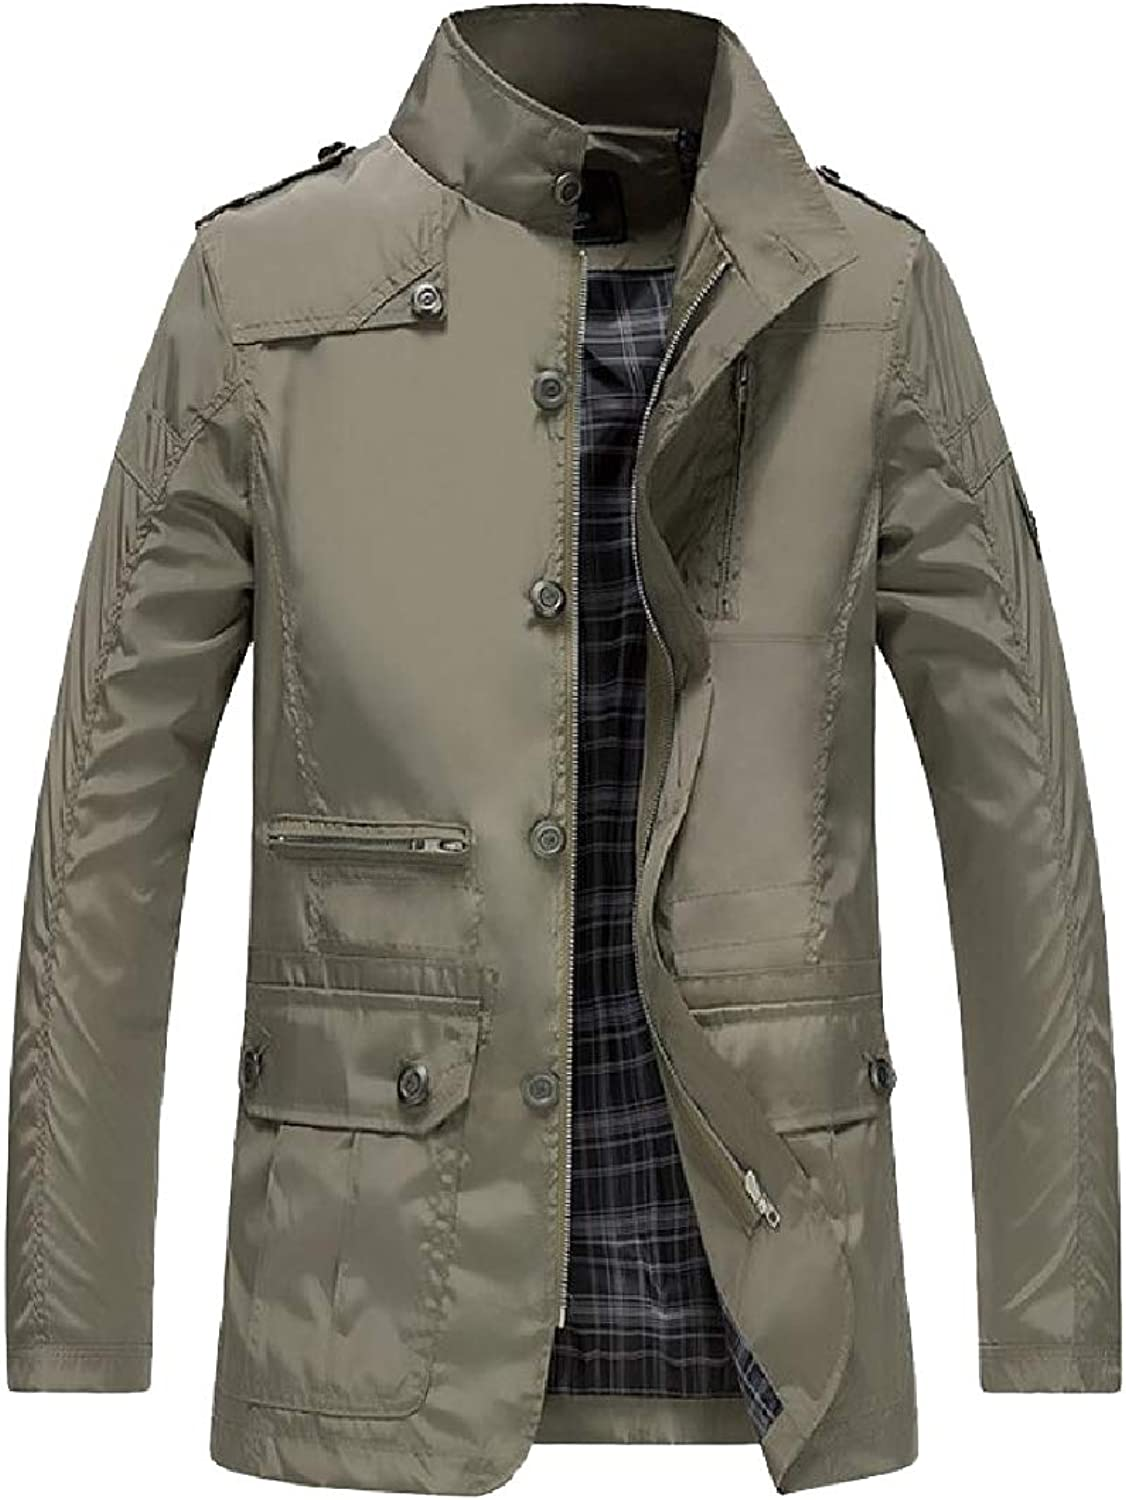 Tootca Mens Plus Size Open Work Stand Collar Trench Coat Jacket